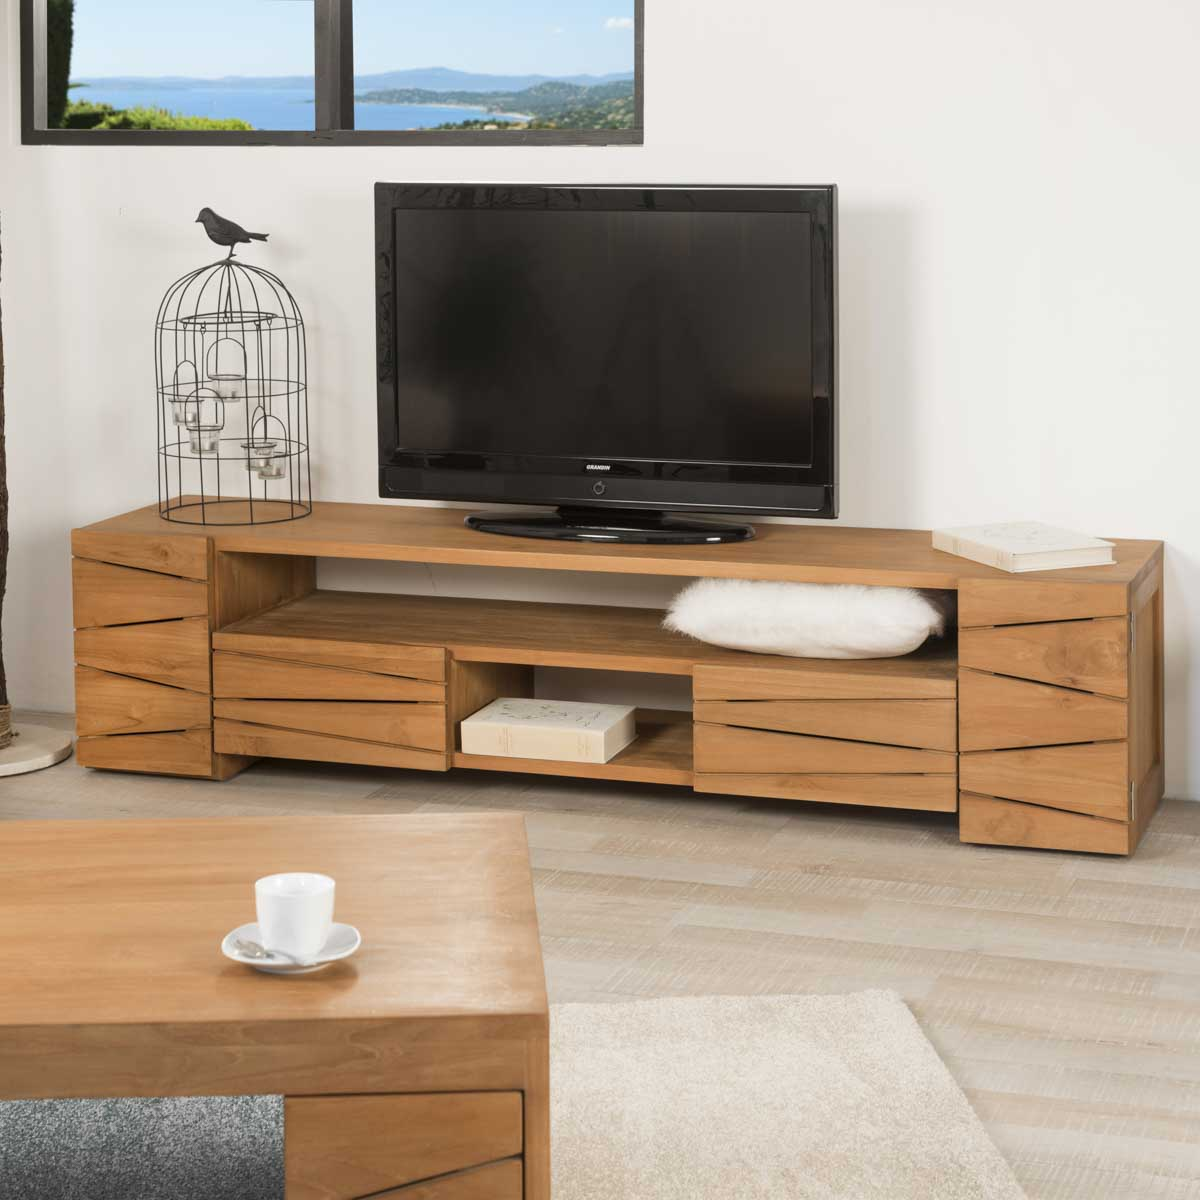 Meuble tv de salon en bois de teck massif s r nit rectangle naturel l - Meuble colonne tv ecran plat ...